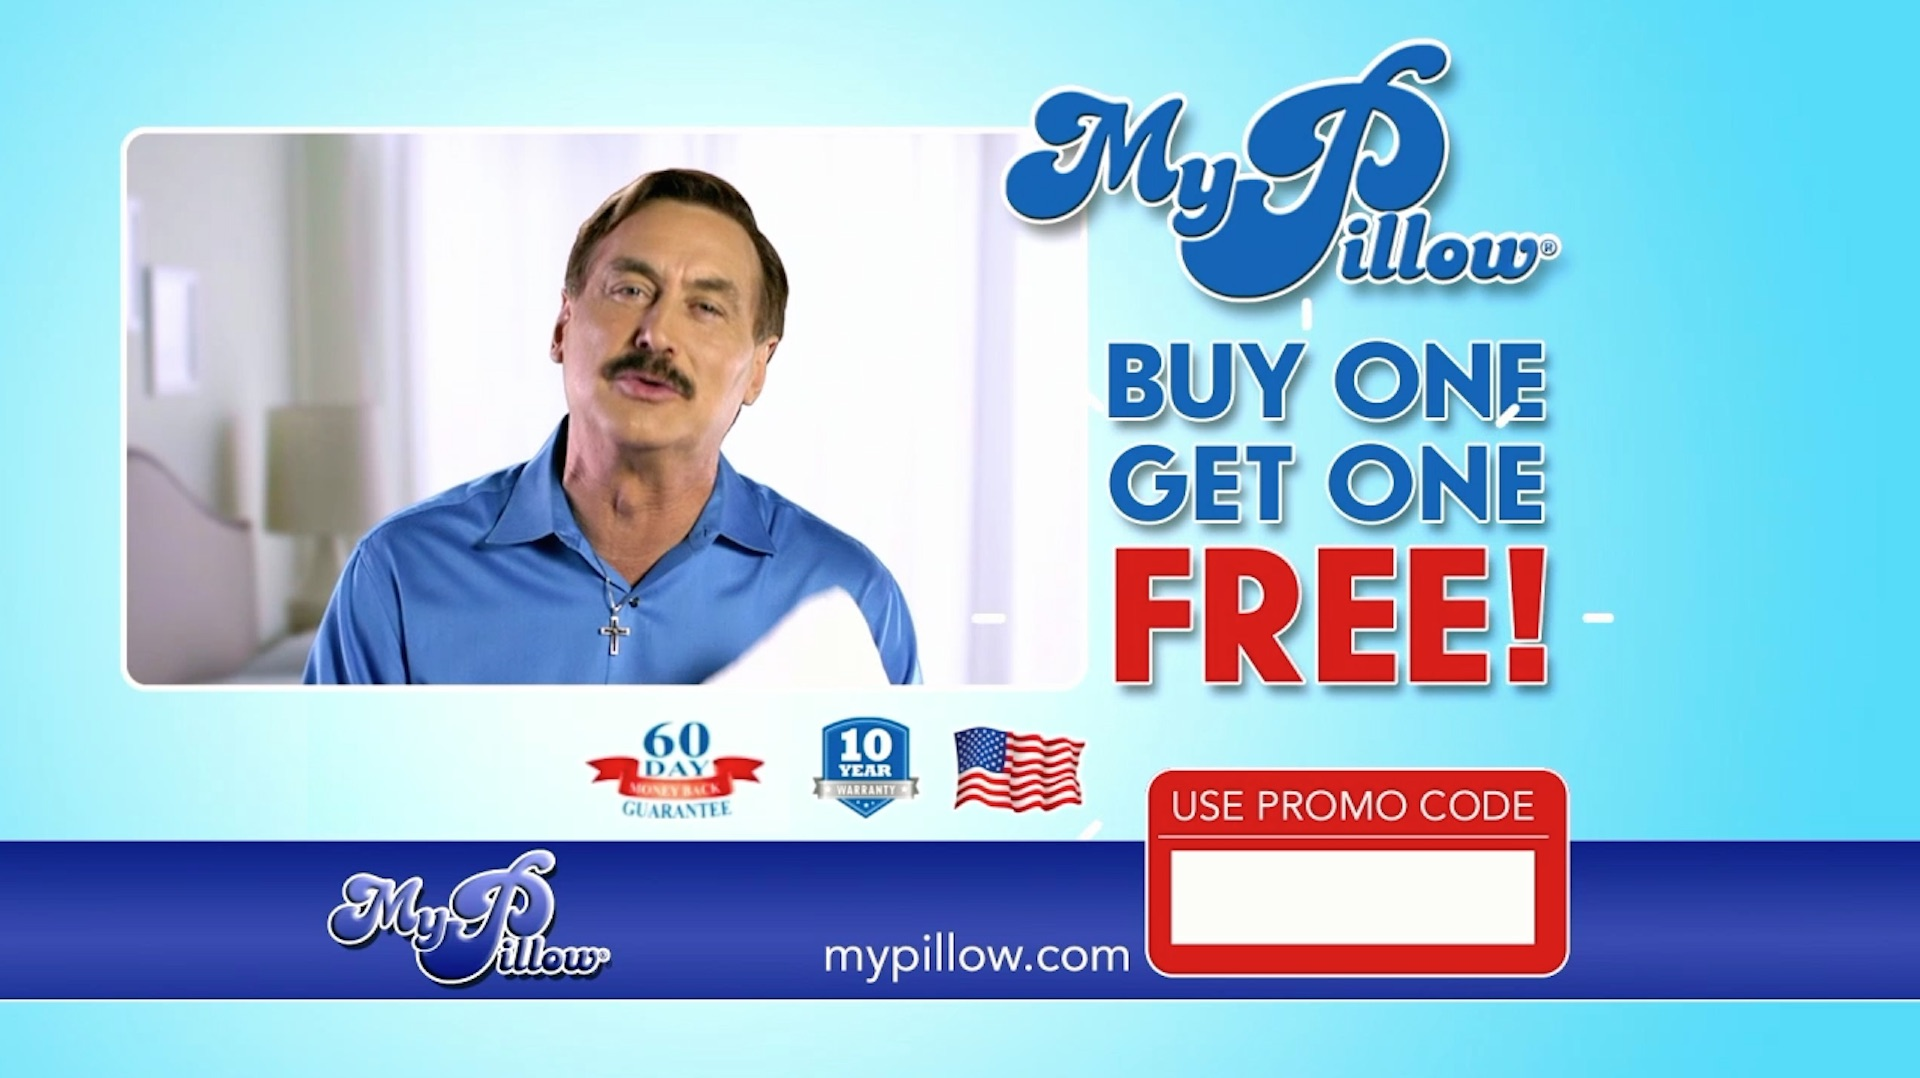 my pillow ad touts buy one get one free deal